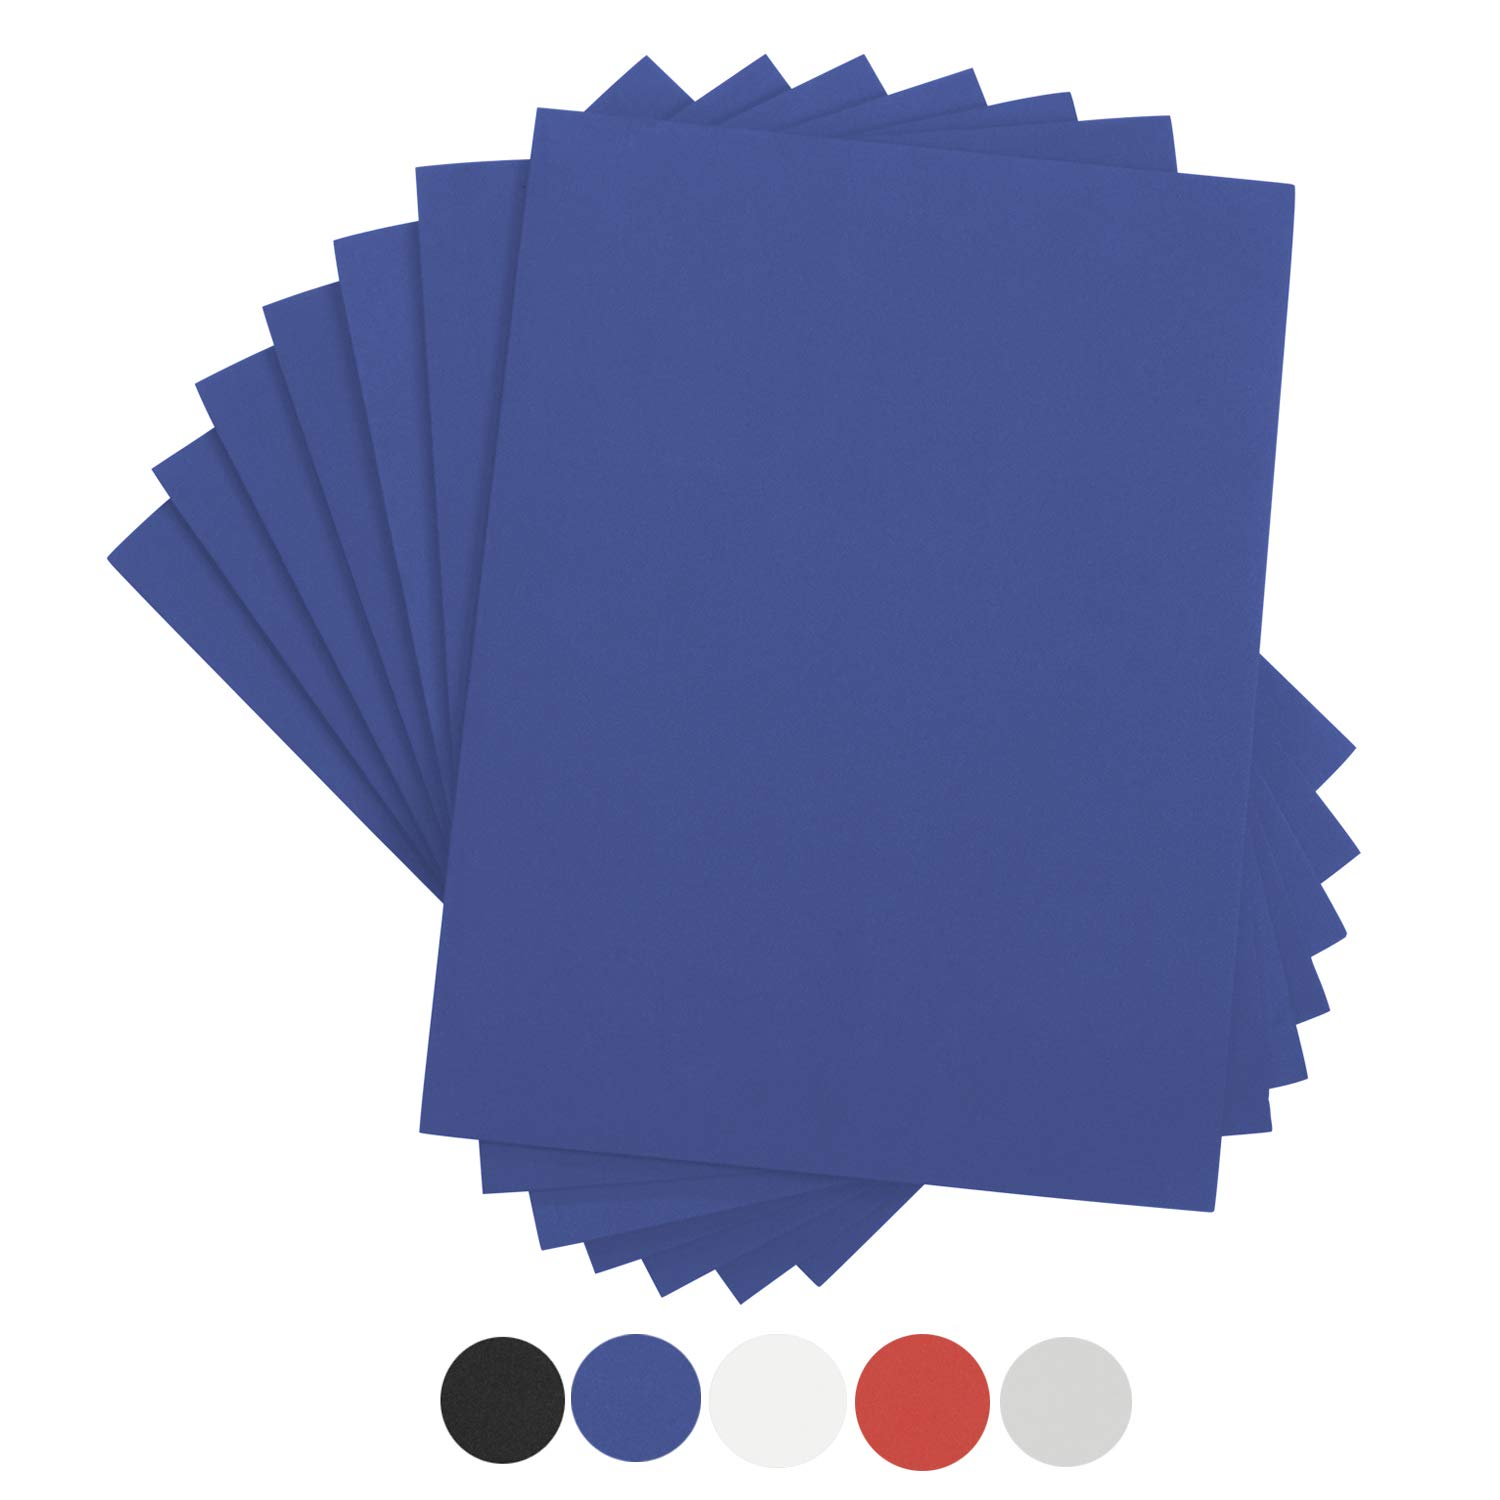 Houseables Crafts Foam Sheets, Art Supplies, 6mm Thick, Blue, 9 X 12 Inch, 10 Pack, Paper Scrapbooking, Cosplay, Crafting Foams Paper, Styrofoam, Foamie, for Kids, Boy Scouts, Halloween, Cushion